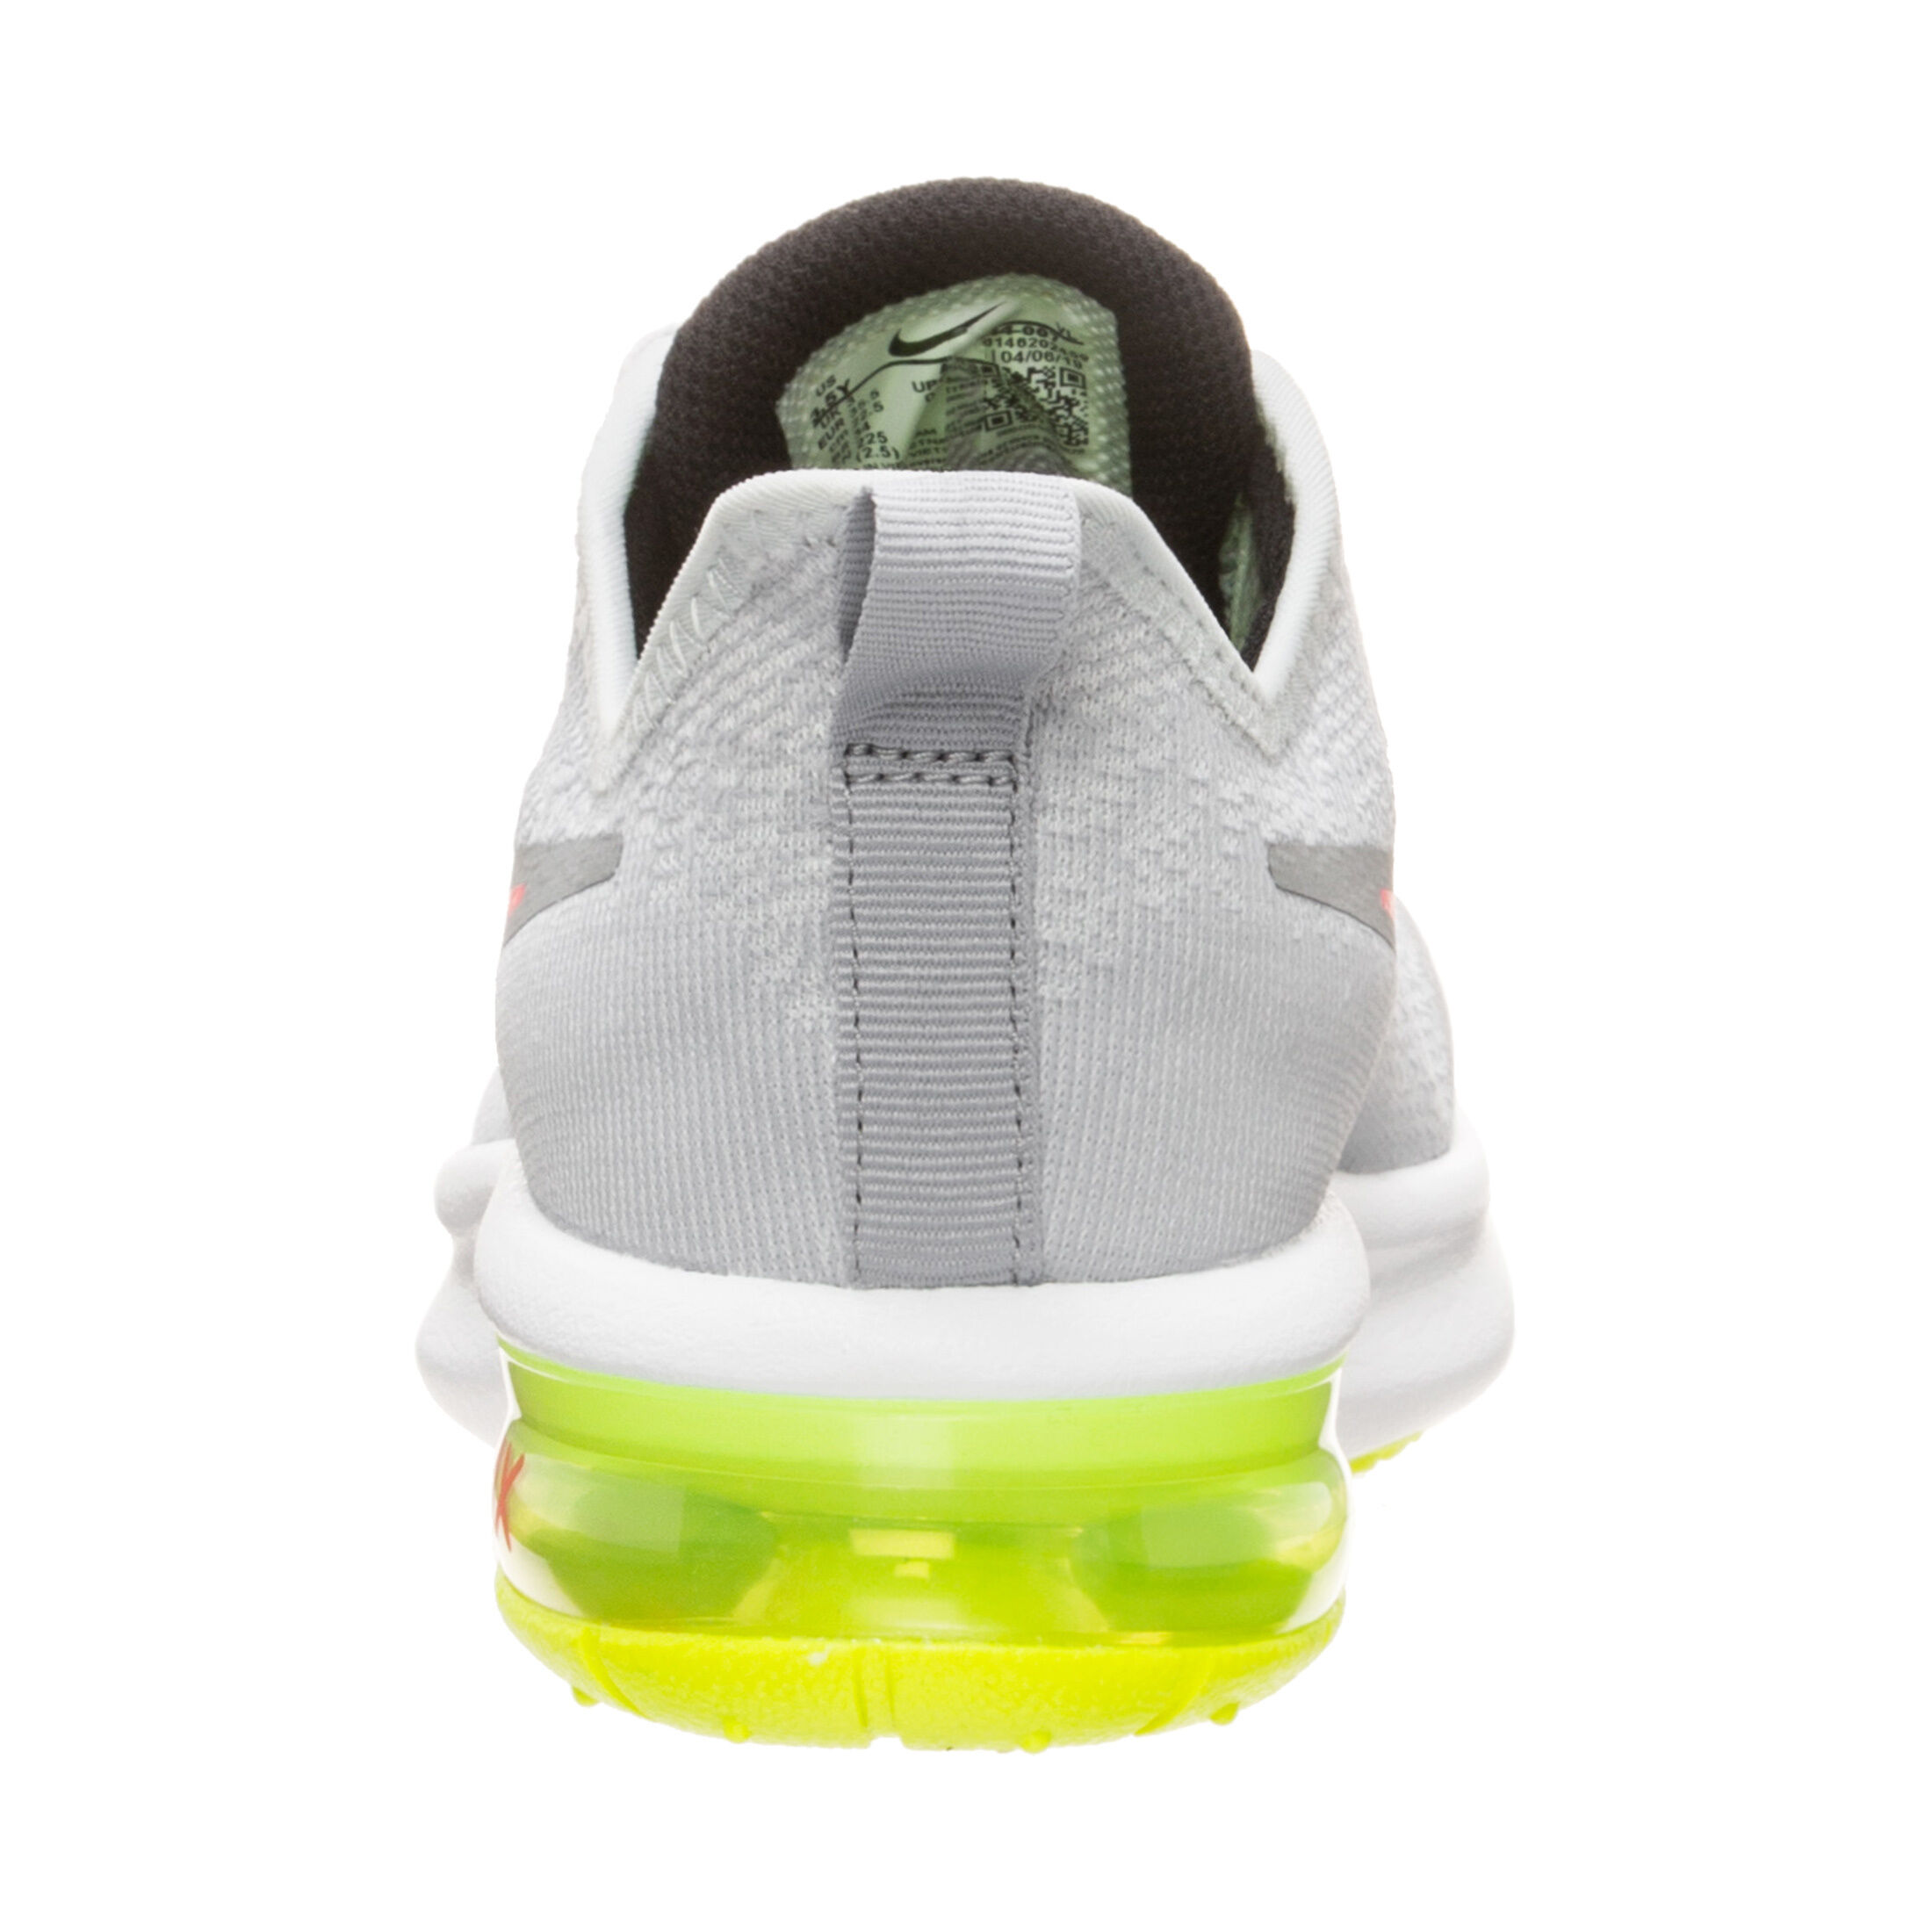 Nike Sportswear Sequent bei 4 Air Max Kinder OUTFITTER Sneaker f76yvYbg